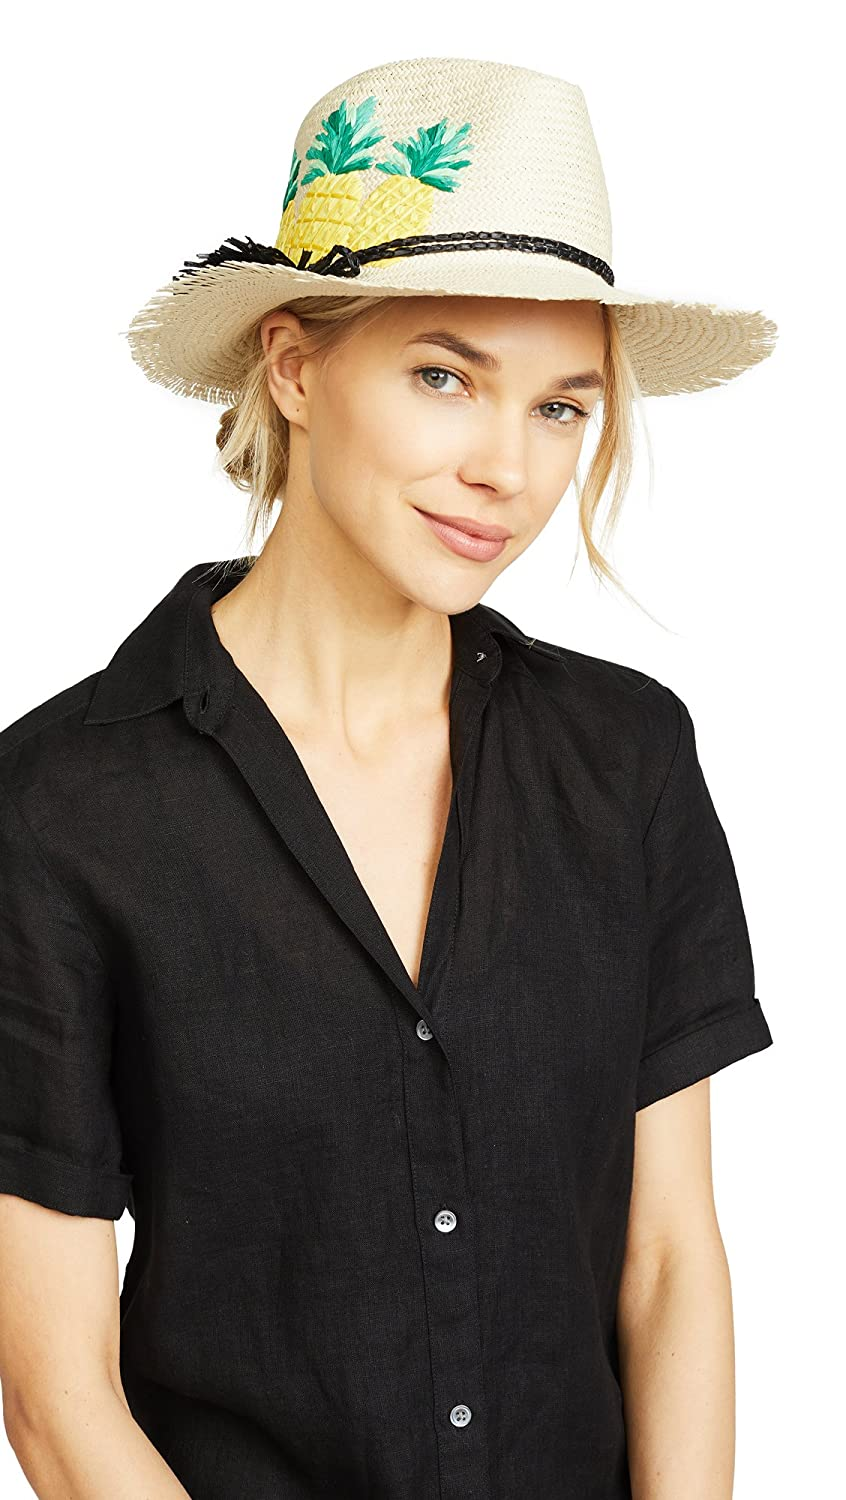 Kate Spade New York Women's Pineapple Trilby Hat Natural One Size